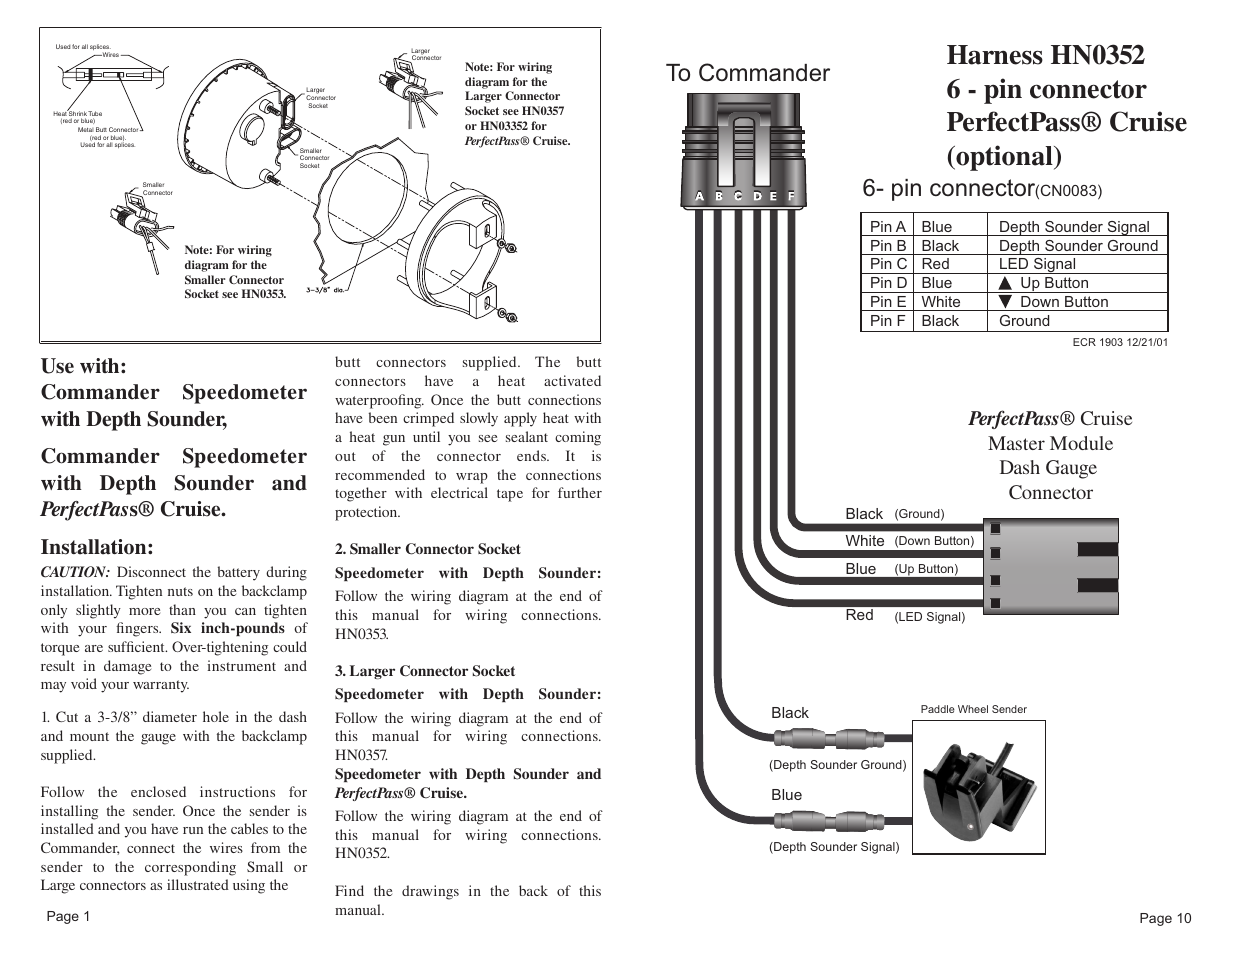 faria instruments commander page3 pin connector faria instruments commander user manual page 3 16 faria gauges wiring diagram at crackthecode.co